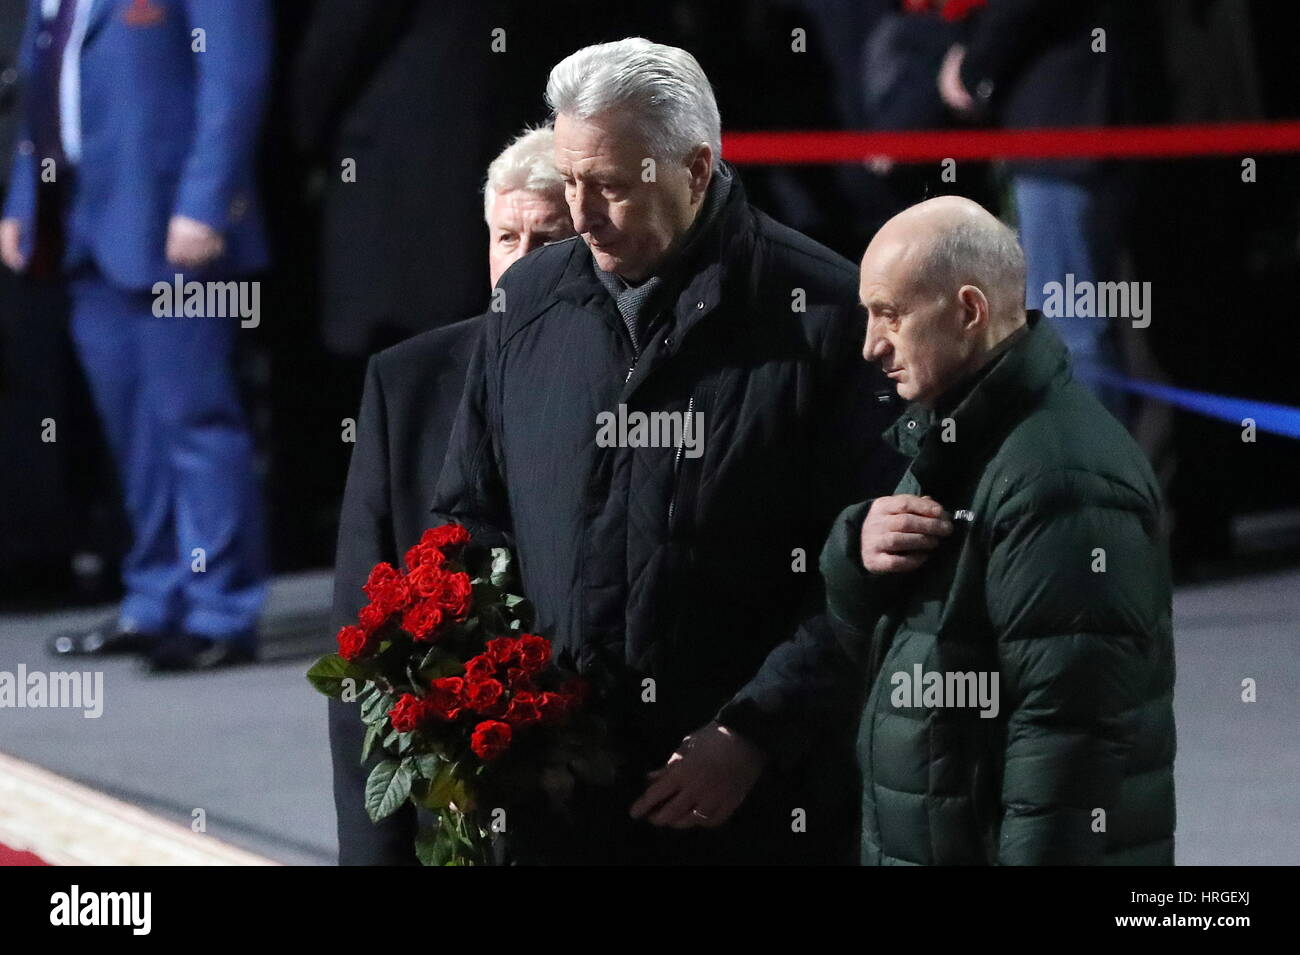 Moscow, Russia. 2nd Mar, 2017. Retired ice hockey players Vladimir Myshkin and Alexander Yakushev (L-R) pay last - Stock Image